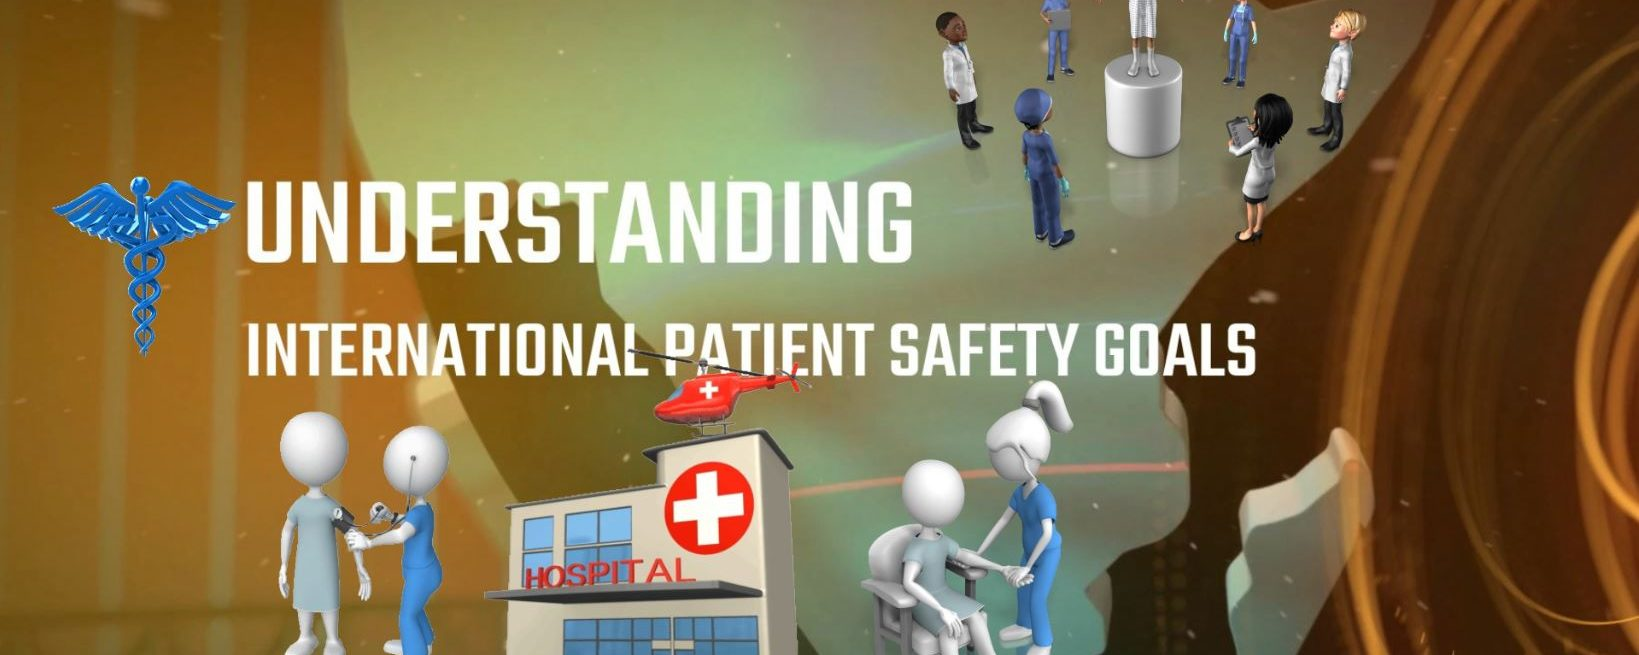 Understanding International Patient Safety Goals